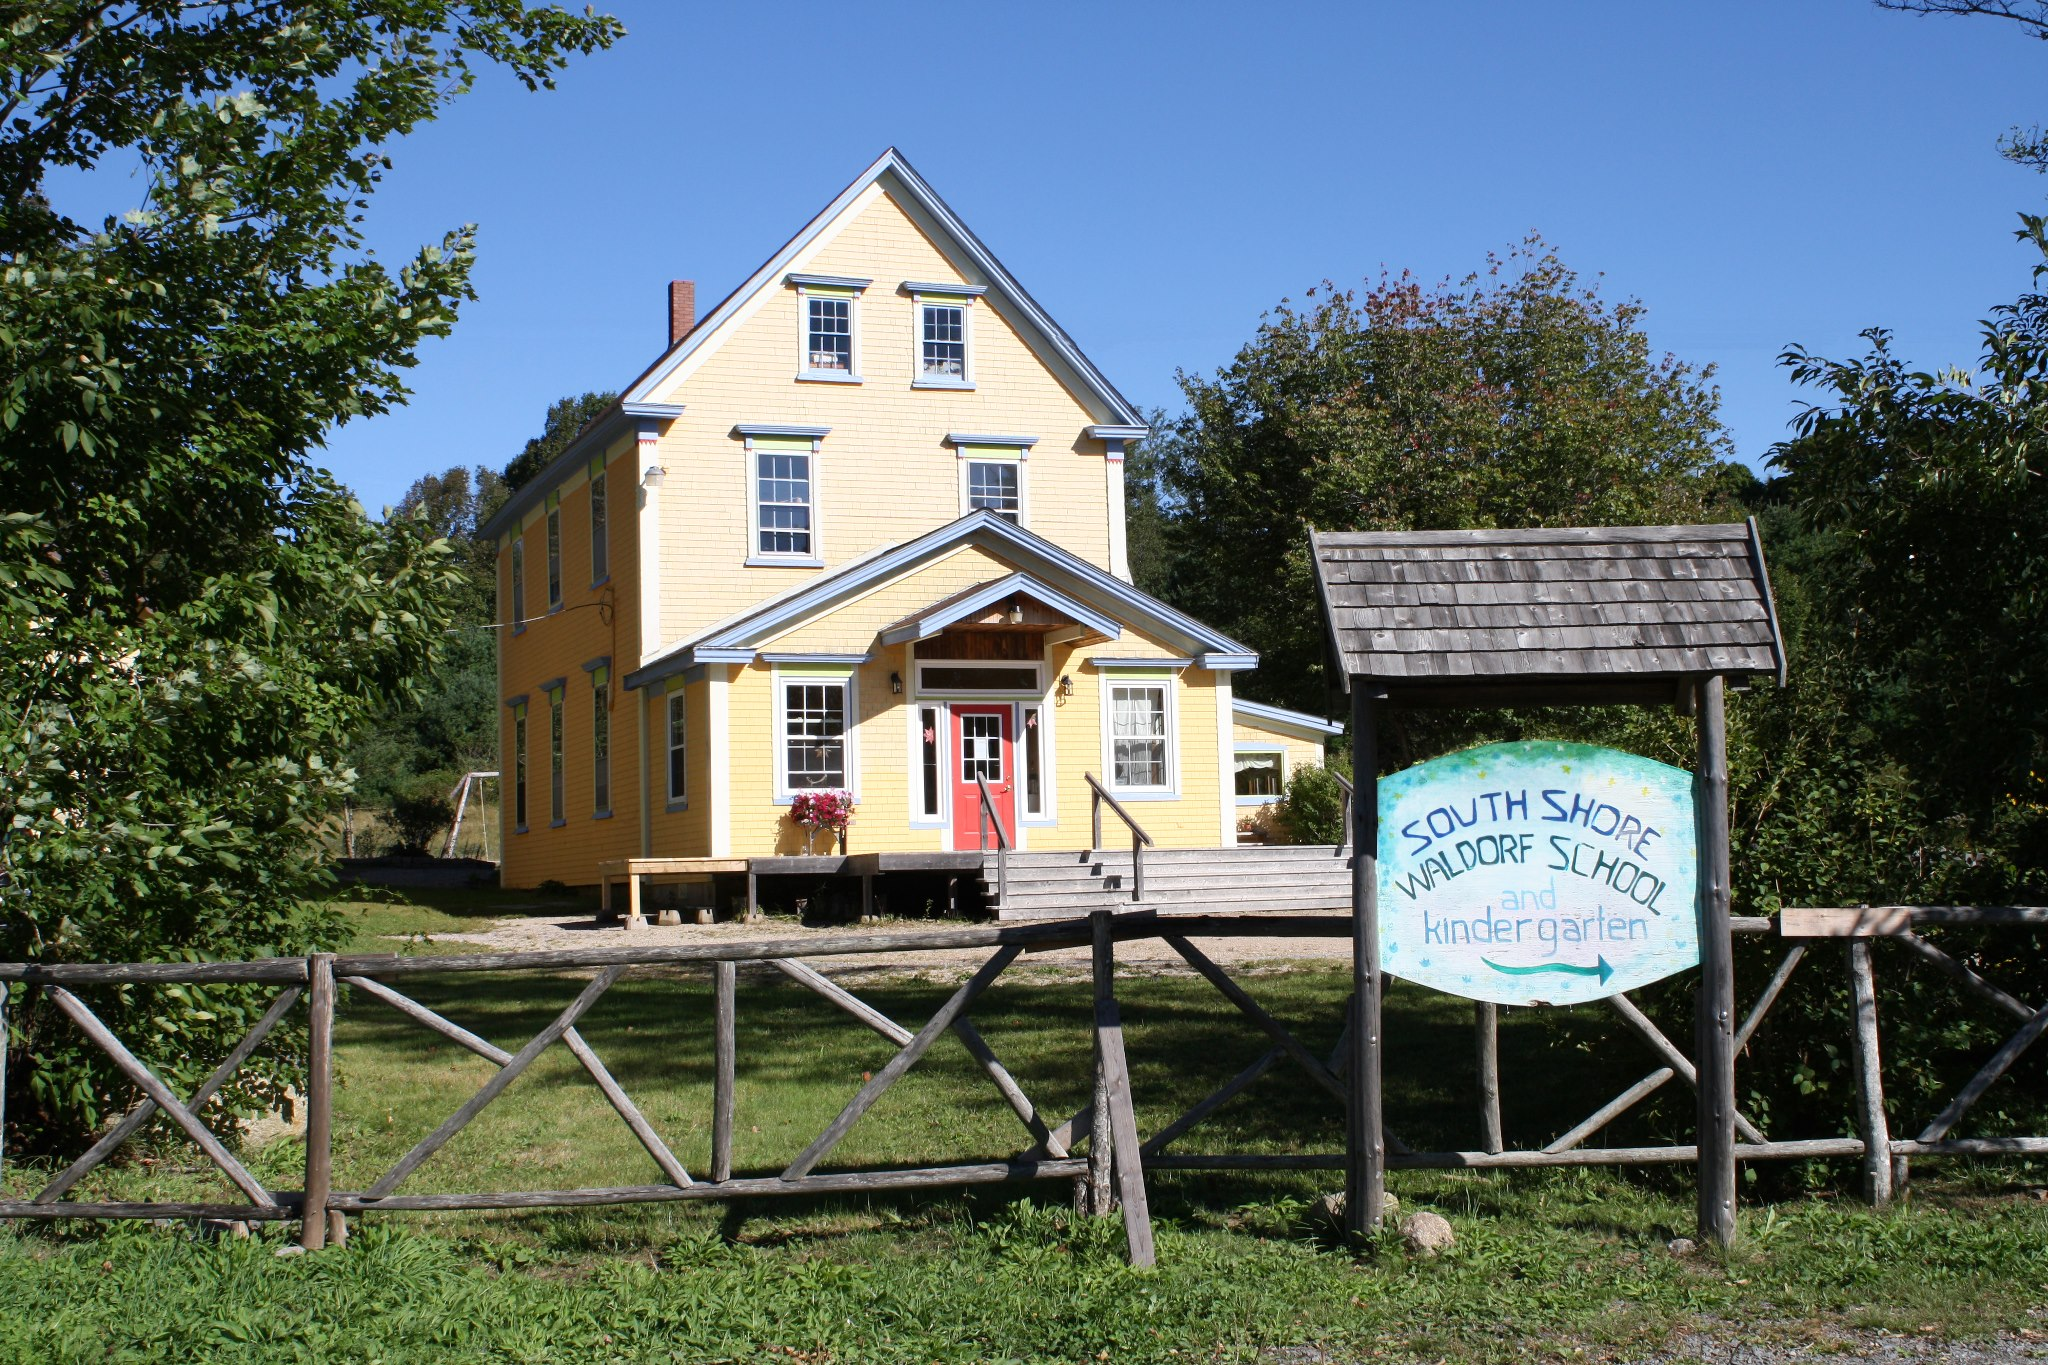 3 SOUTH SHORE WALDORF SCHOOL